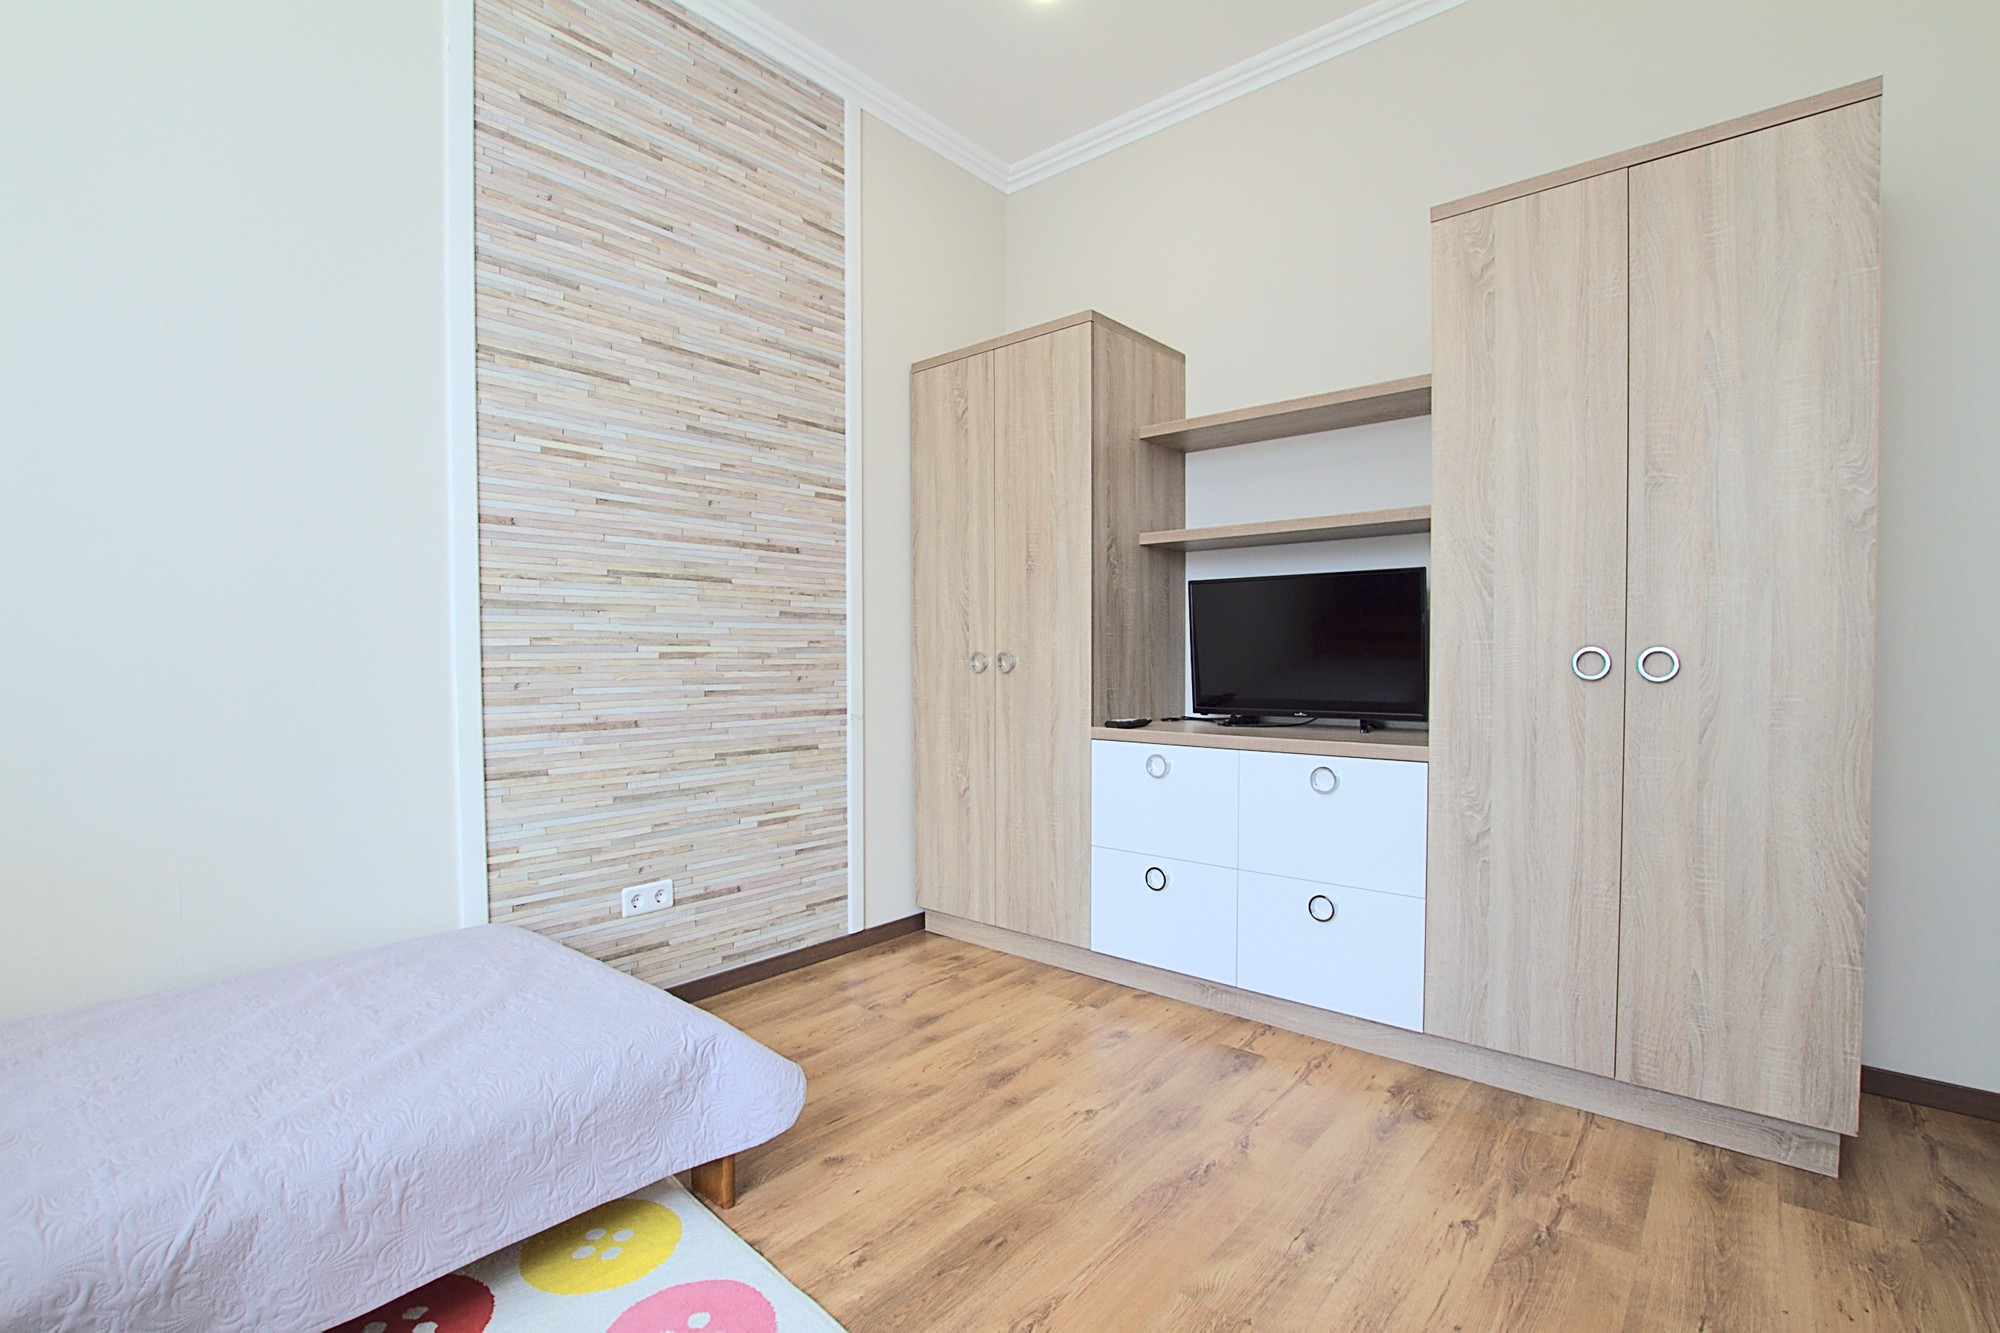 Rent_Apartment_in_Chisinau_at_Colisem_20.jpg